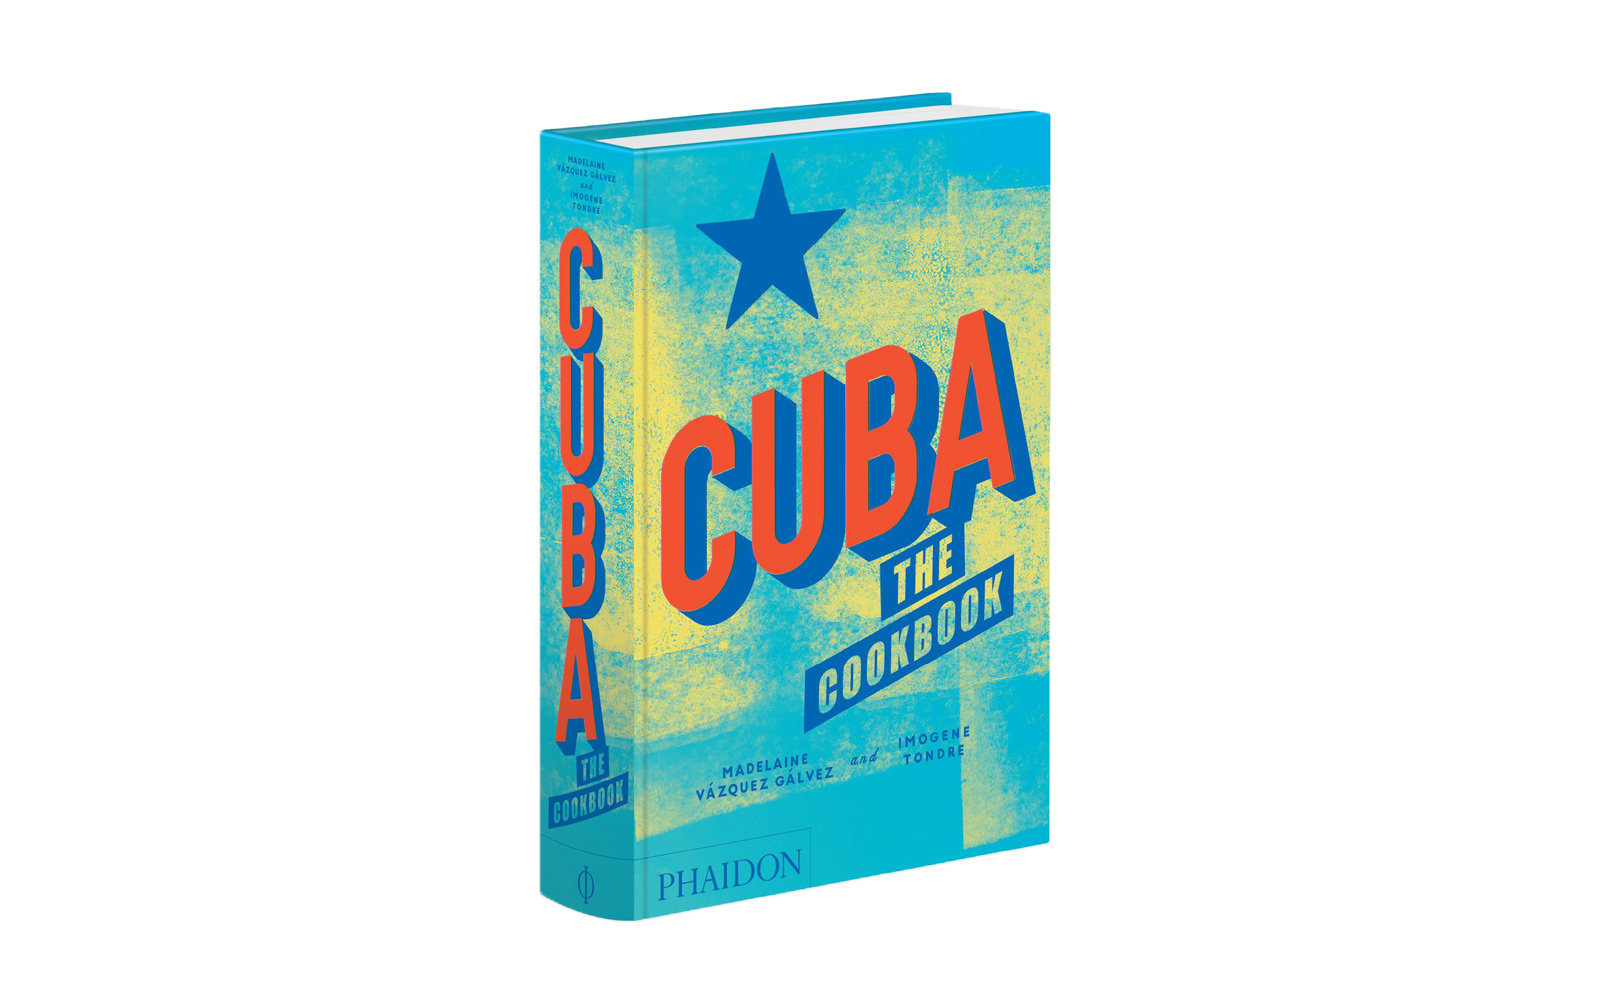 Cuba, The Cookbook, by Madelaine Vazquez and Imogene Tondre